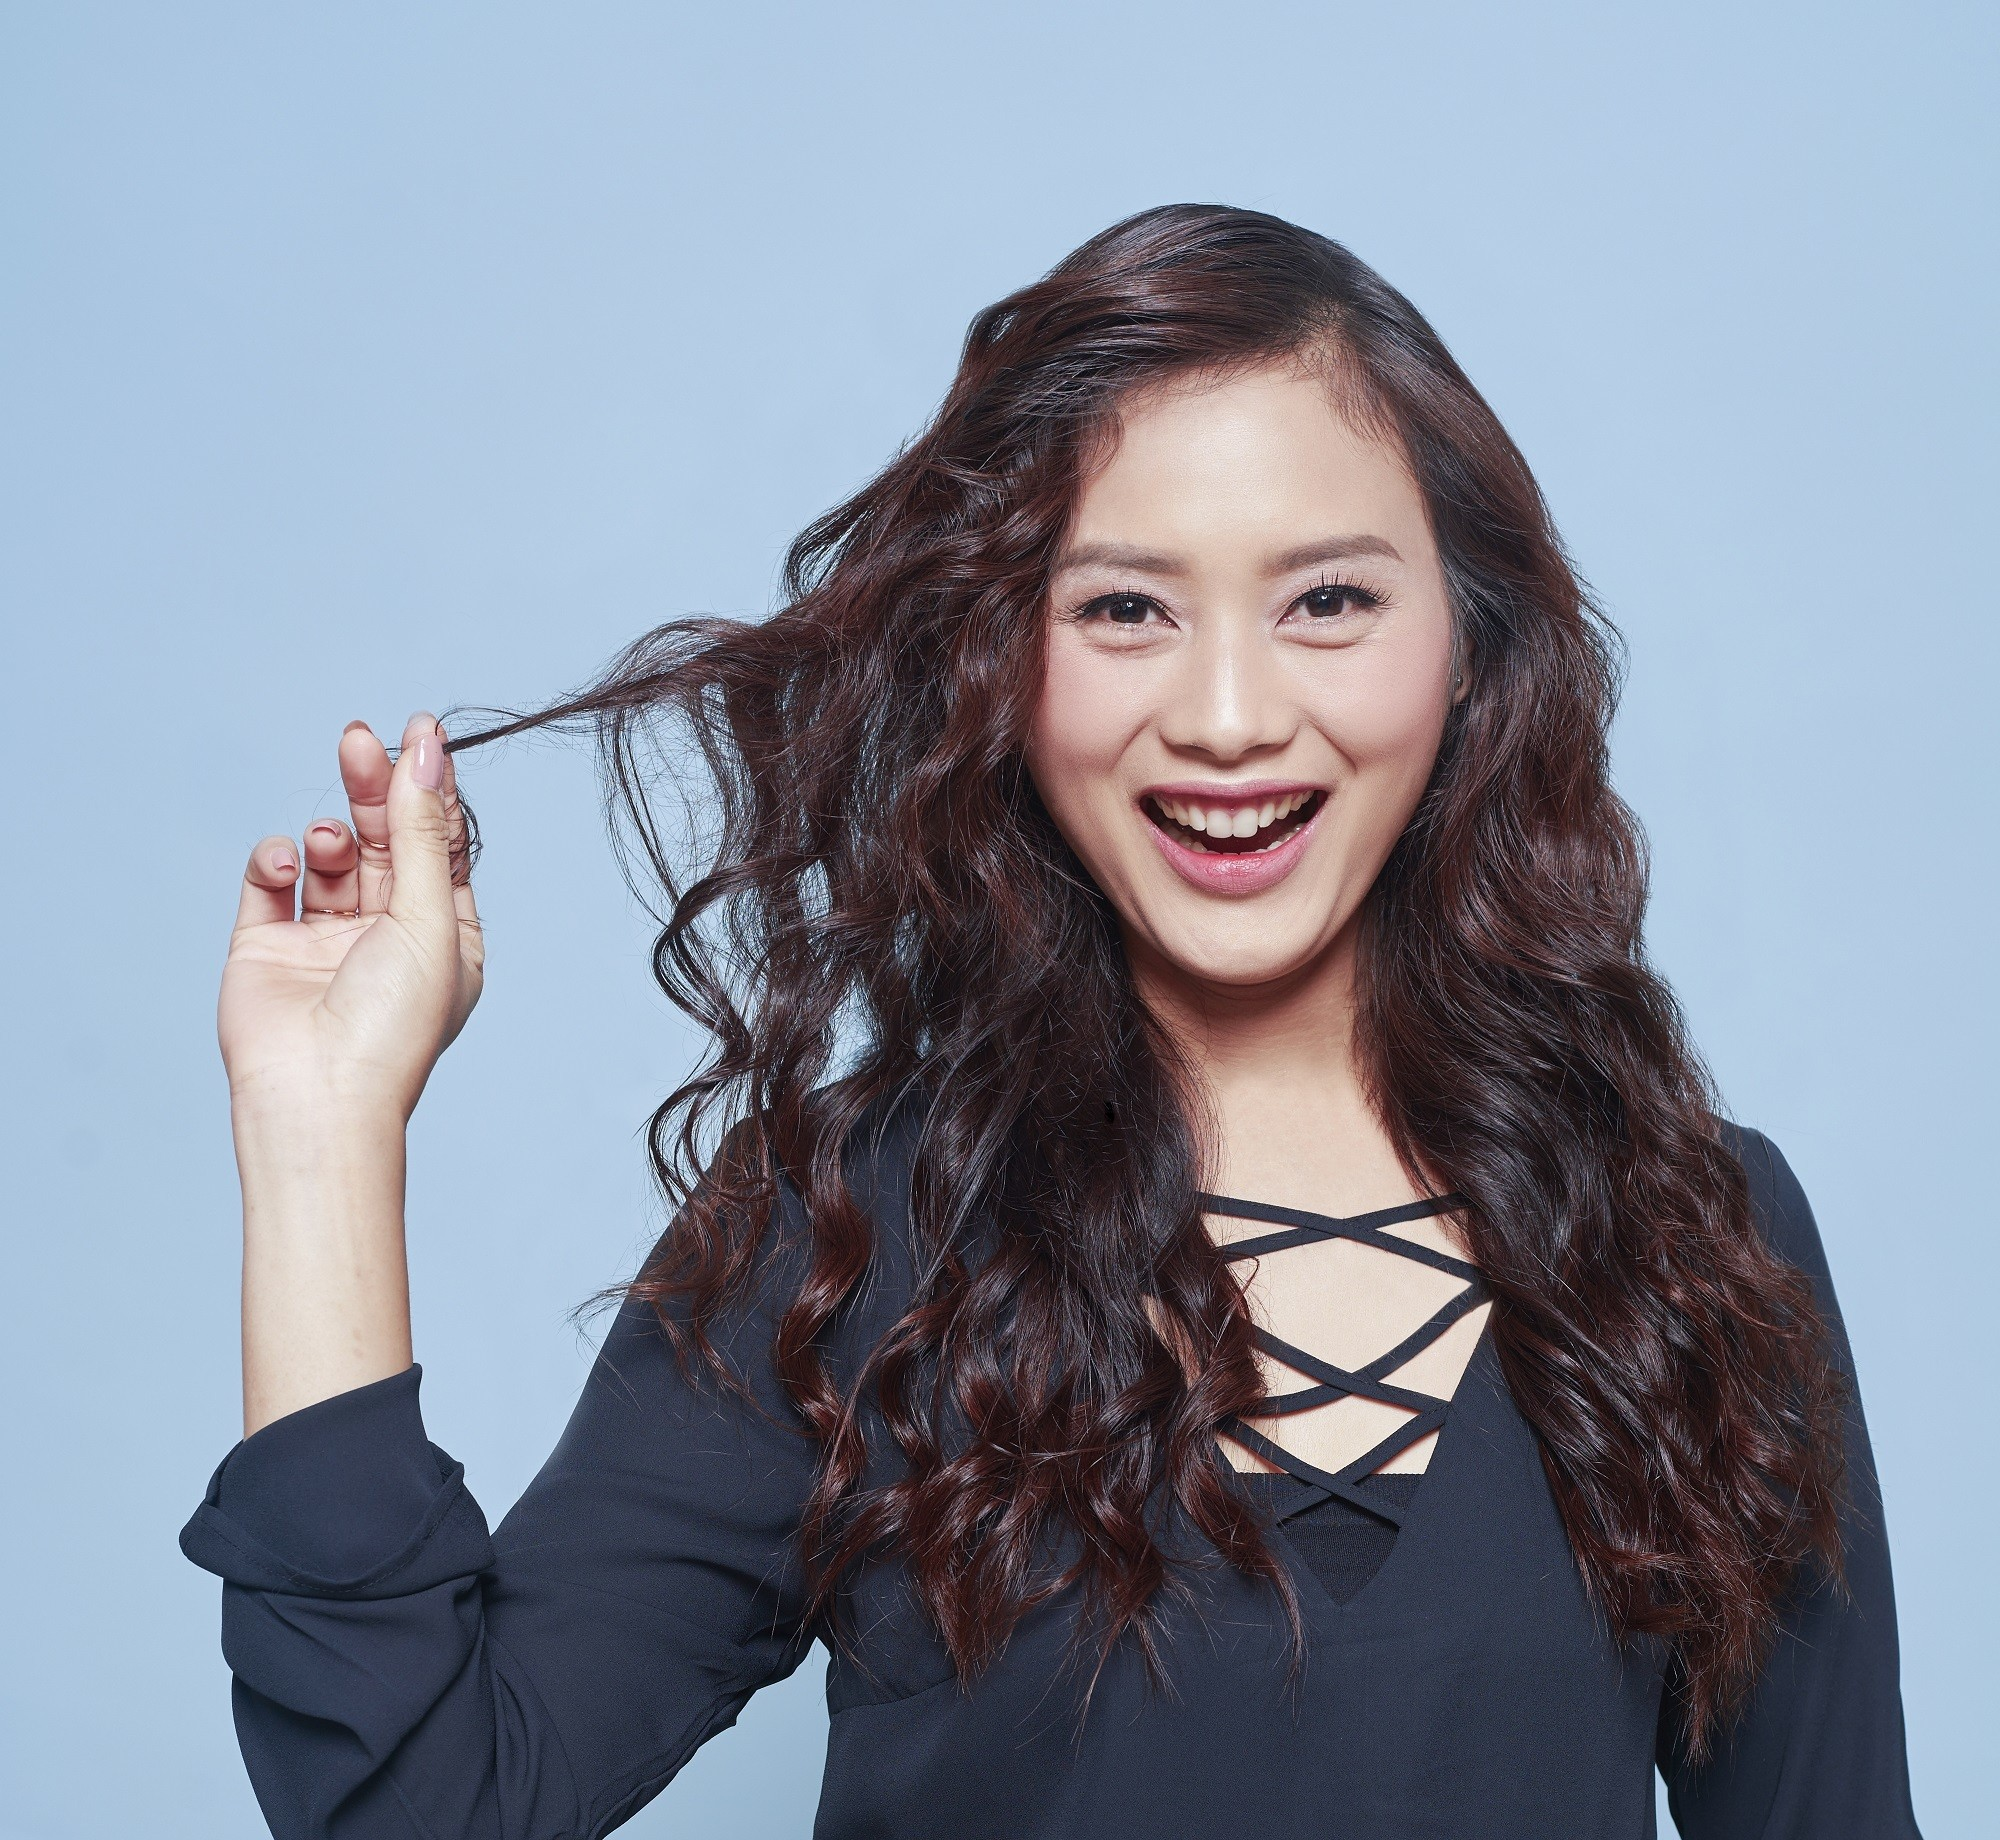 Advent calendar: Closeup shot of an Asian woman with long dark brown wavy hair wearing a long-sleeved top